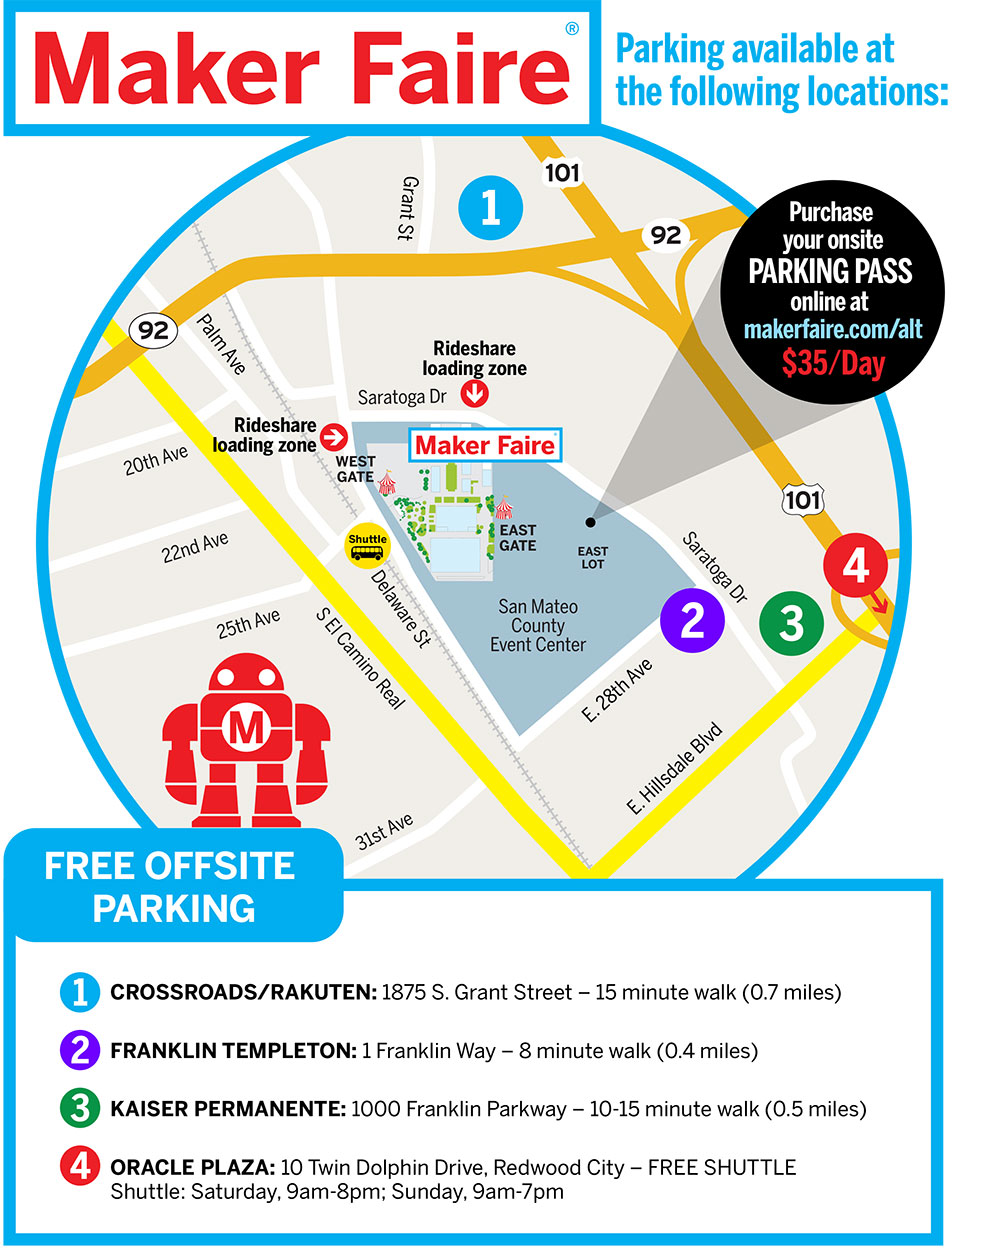 Maker Faire 2019 Parking Map